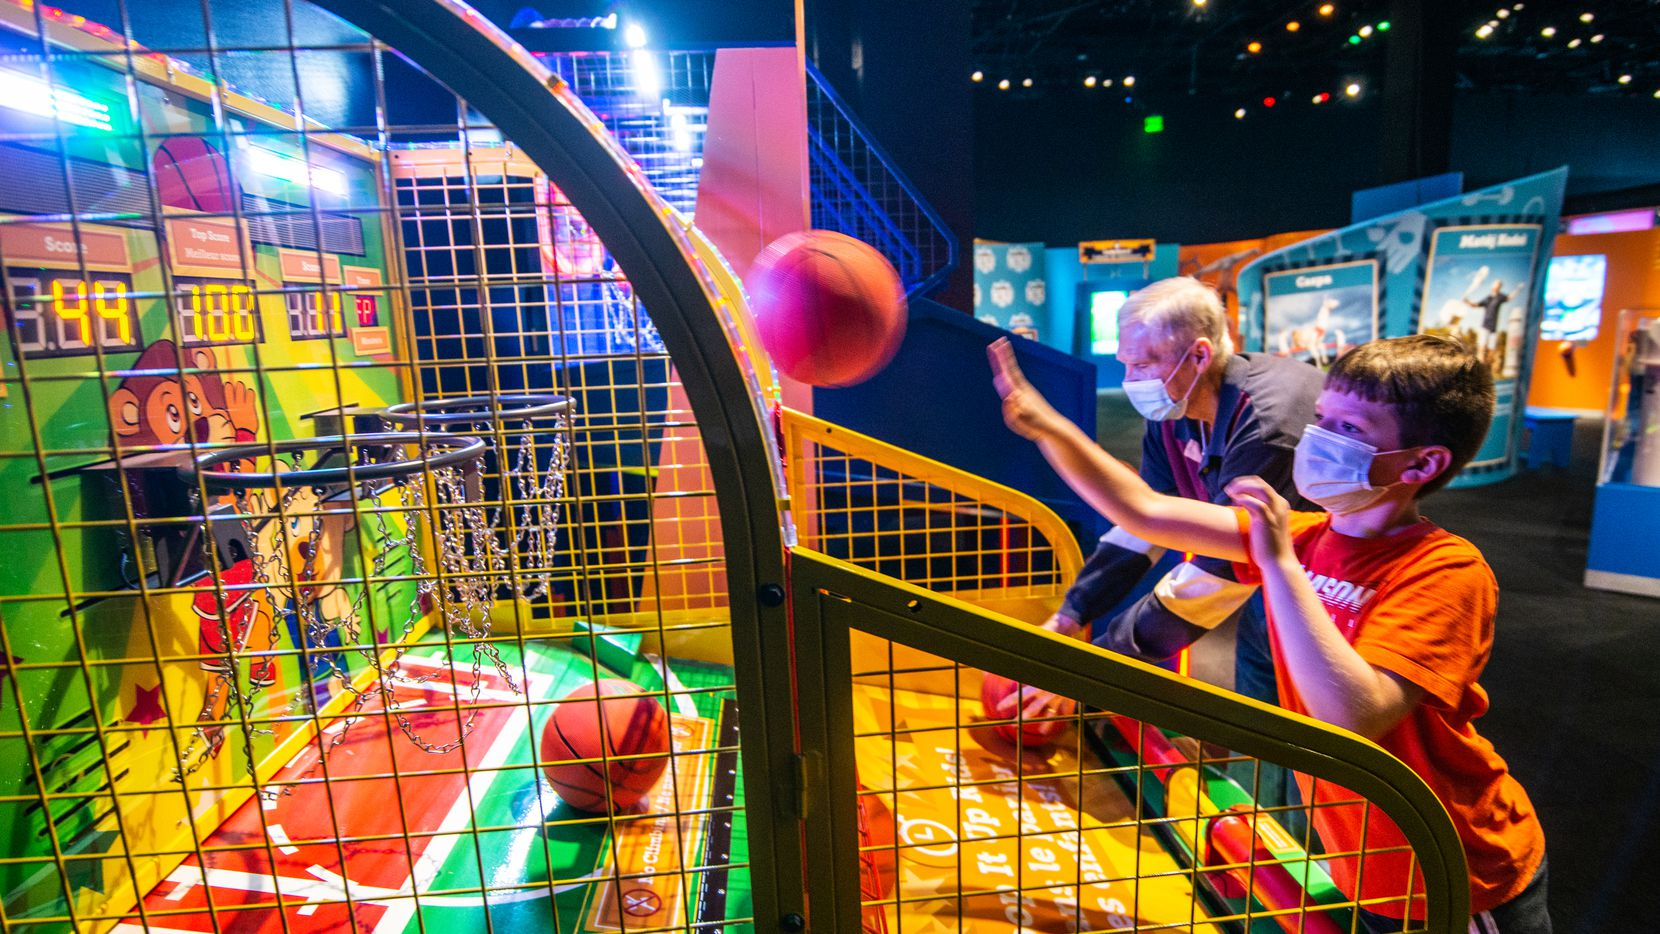 "Through Sept. 6, the Perot Museum of Nature and Science is displaying ""The Science of Guinness World Records."" The exhibit includes record-breaking items such as the largest Pac-Man video game, plus interactive challenges using science, sports and other skills."